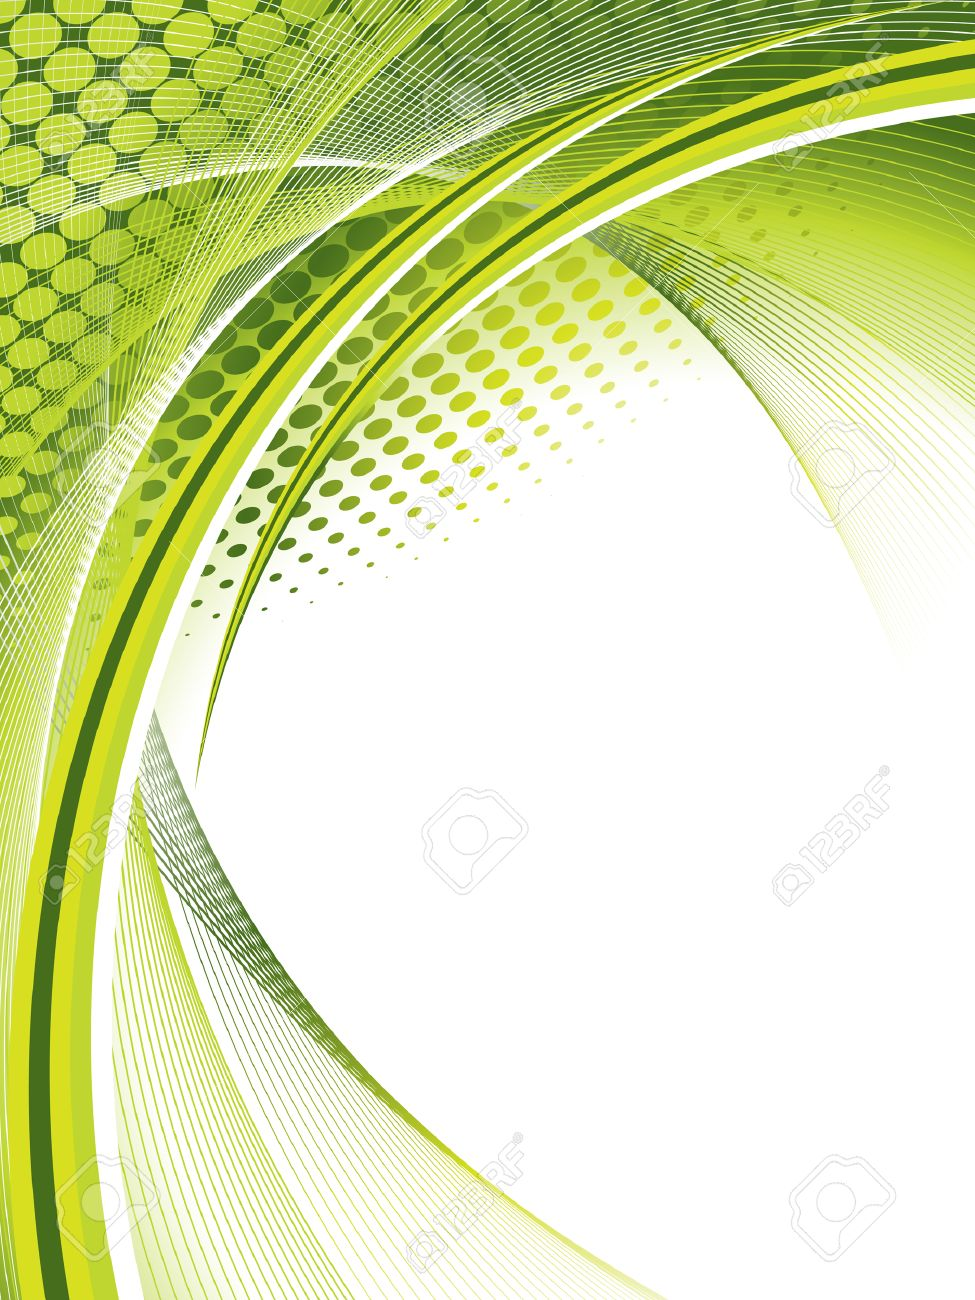 abstract business background, illustration Stock Vector - 5728735